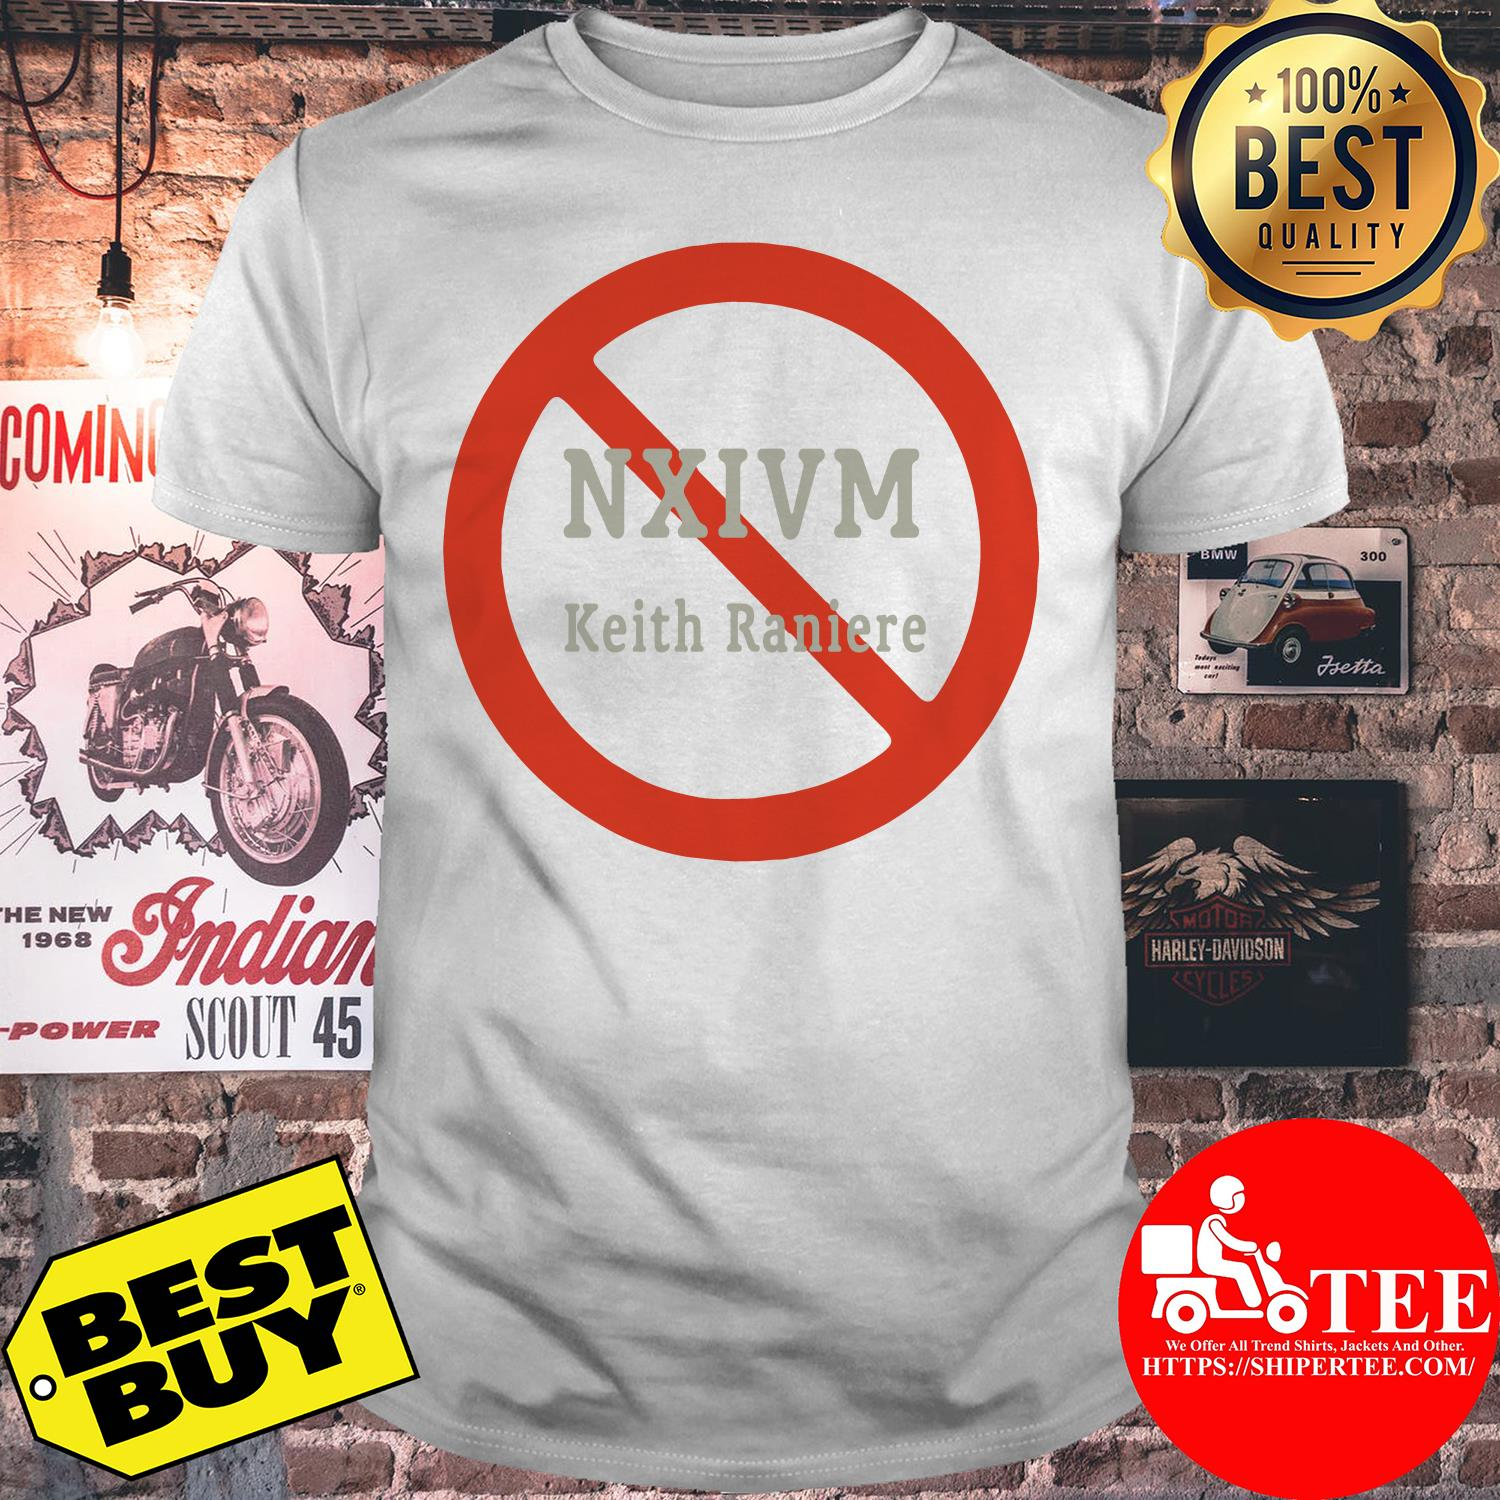 NXIVM Keith Raniere Golden Grey Graphic Novelty Tee Shirt